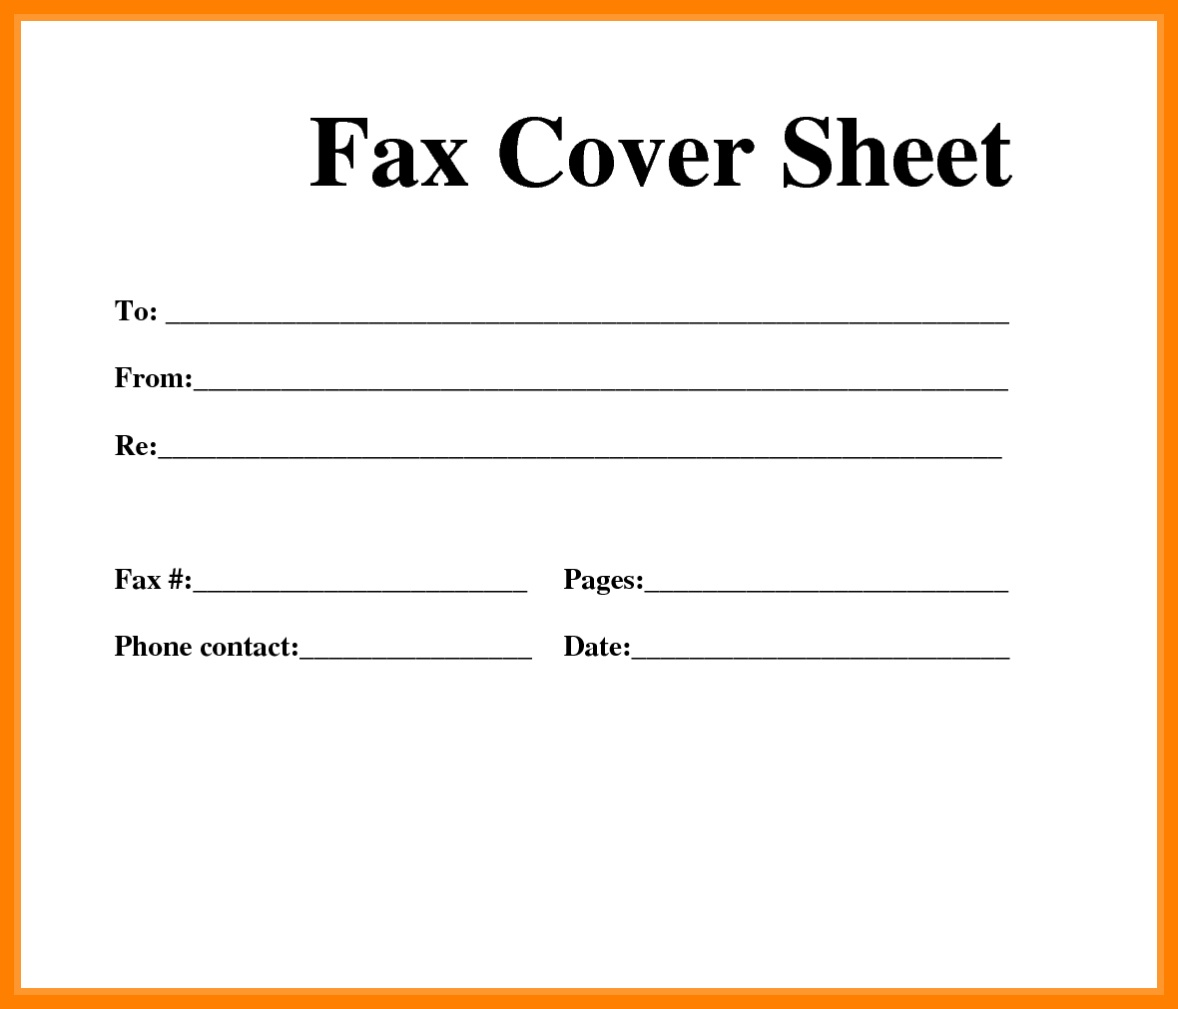 Printable Cover Sheet   Ellipsis - Free Printable Cover Letter For Fax